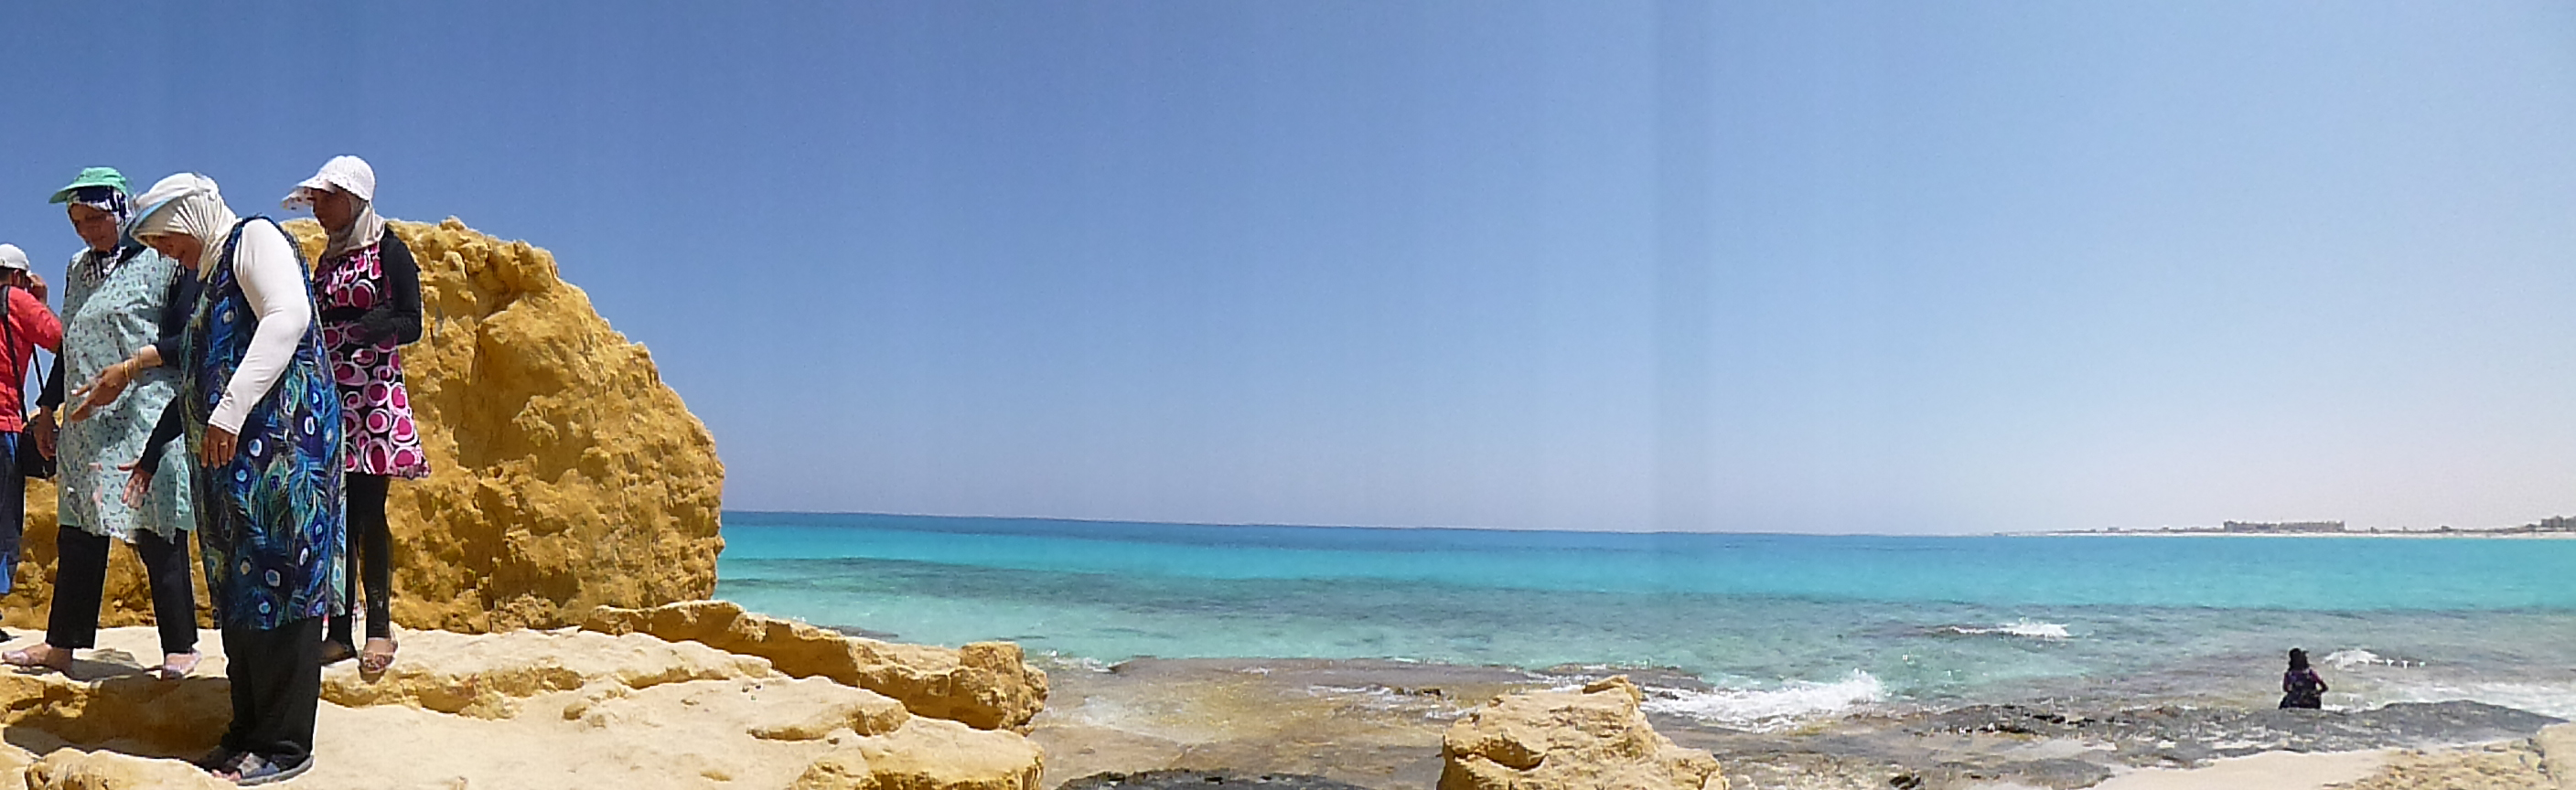 Marsa Matrouh Egypt  city images : Description Marsa Matrouh city in Egypt on the northern coast of the ...